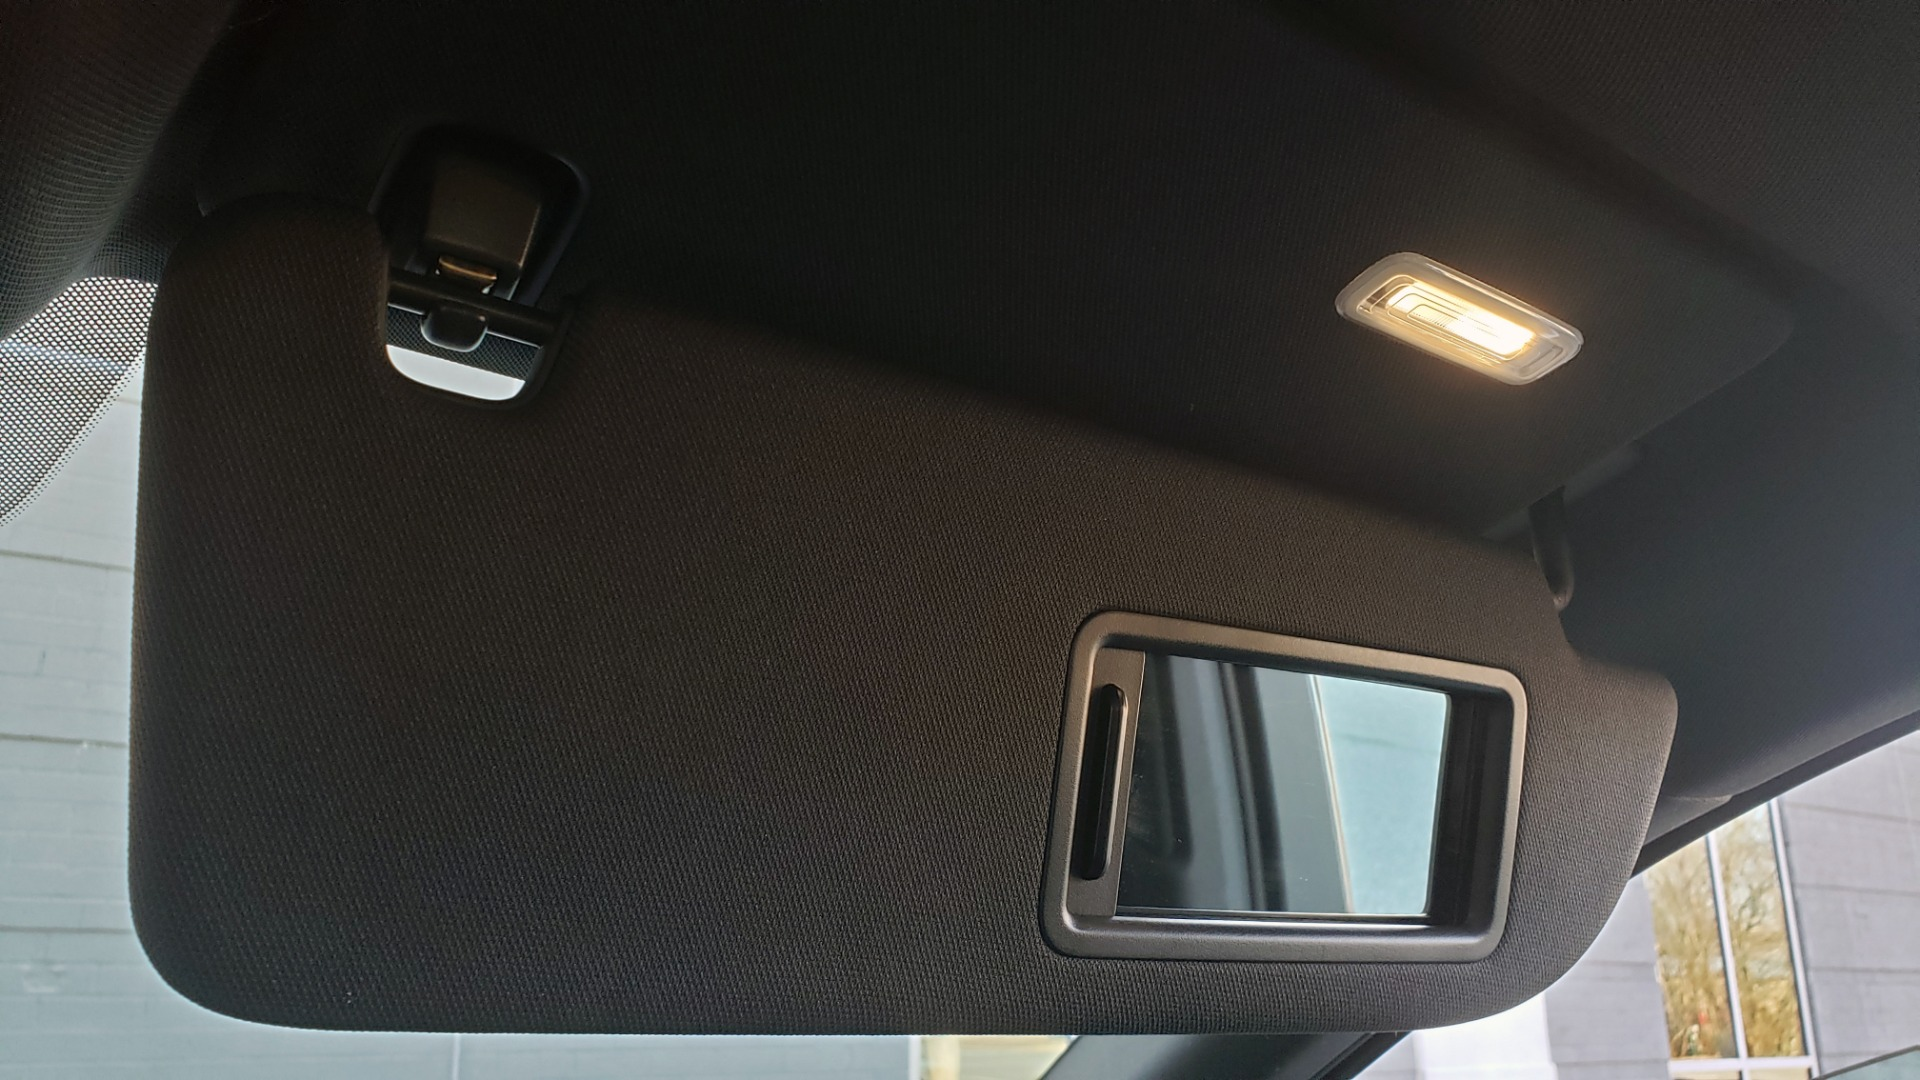 Used 2020 Audi Q7 PREMIUM PLUS / NAV / SUNROOF / 3-ROW / REARVIEW for sale $50,695 at Formula Imports in Charlotte NC 28227 56